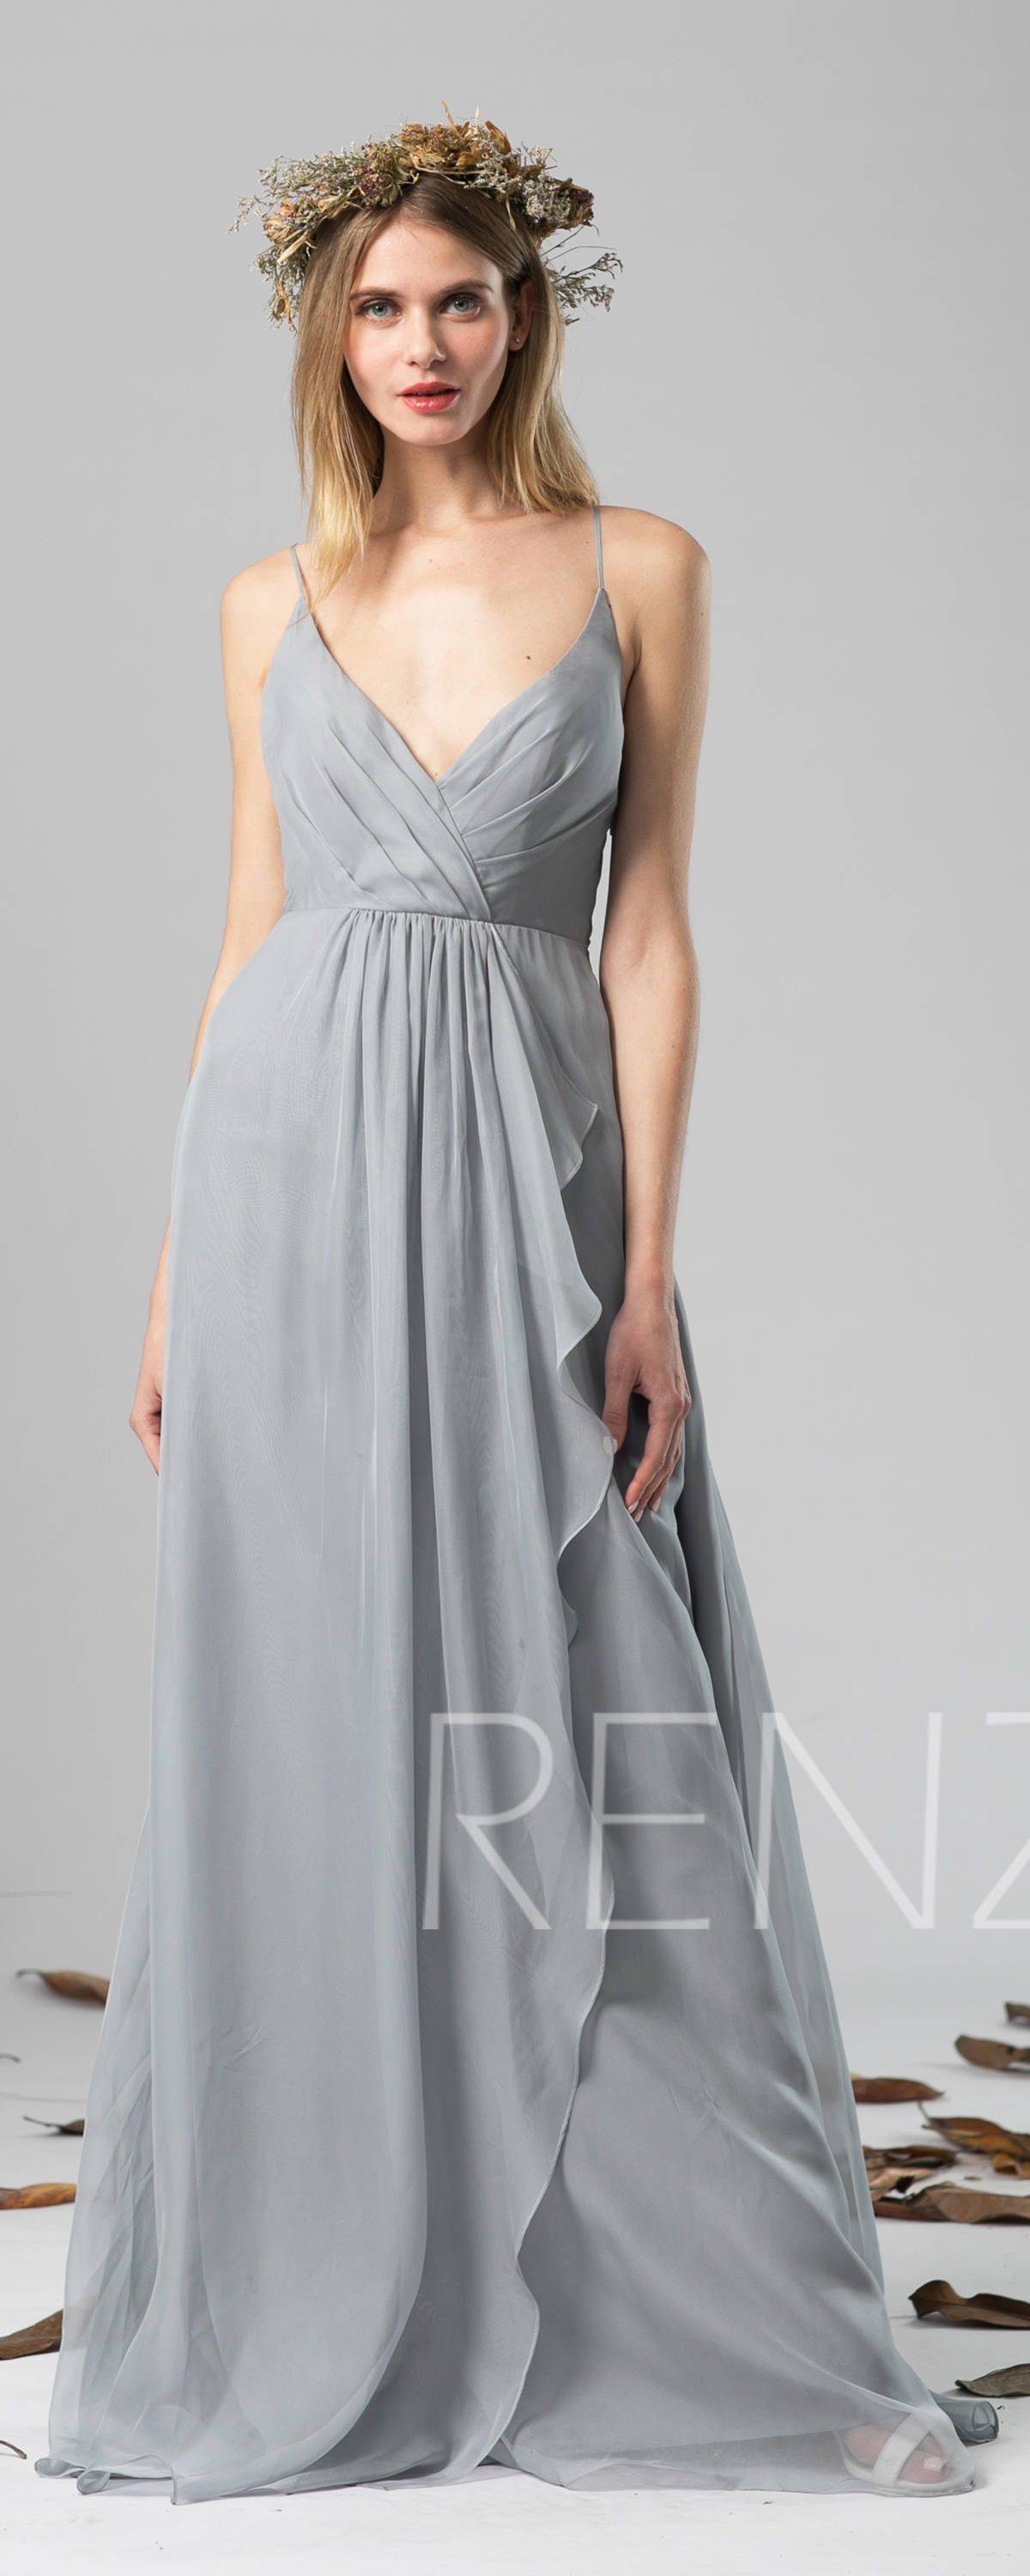 Bridesmaid Dress Medium Gray Chiffon Dress Wedding DressV Neck